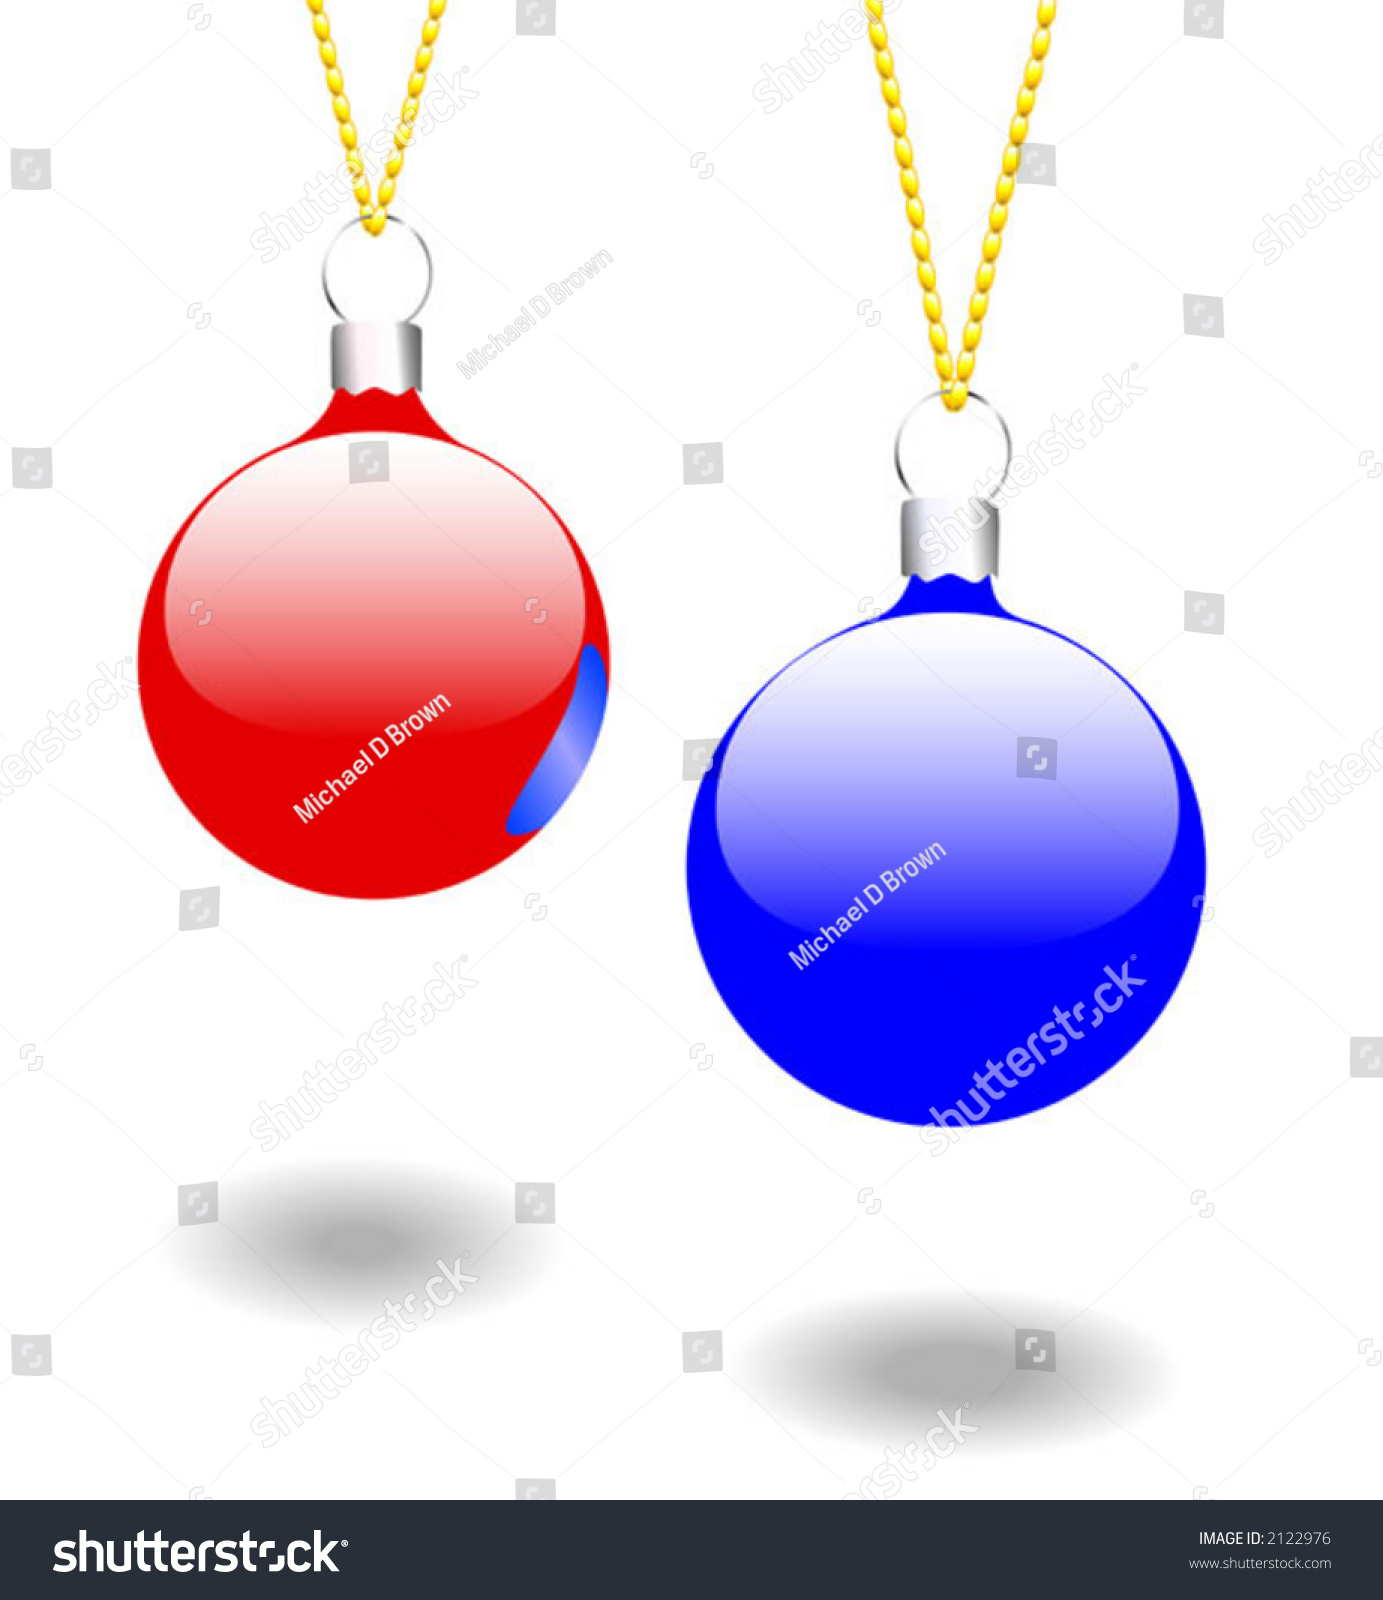 Simple attractive vector christmas ornaments hanging stock for Simple gold ornaments